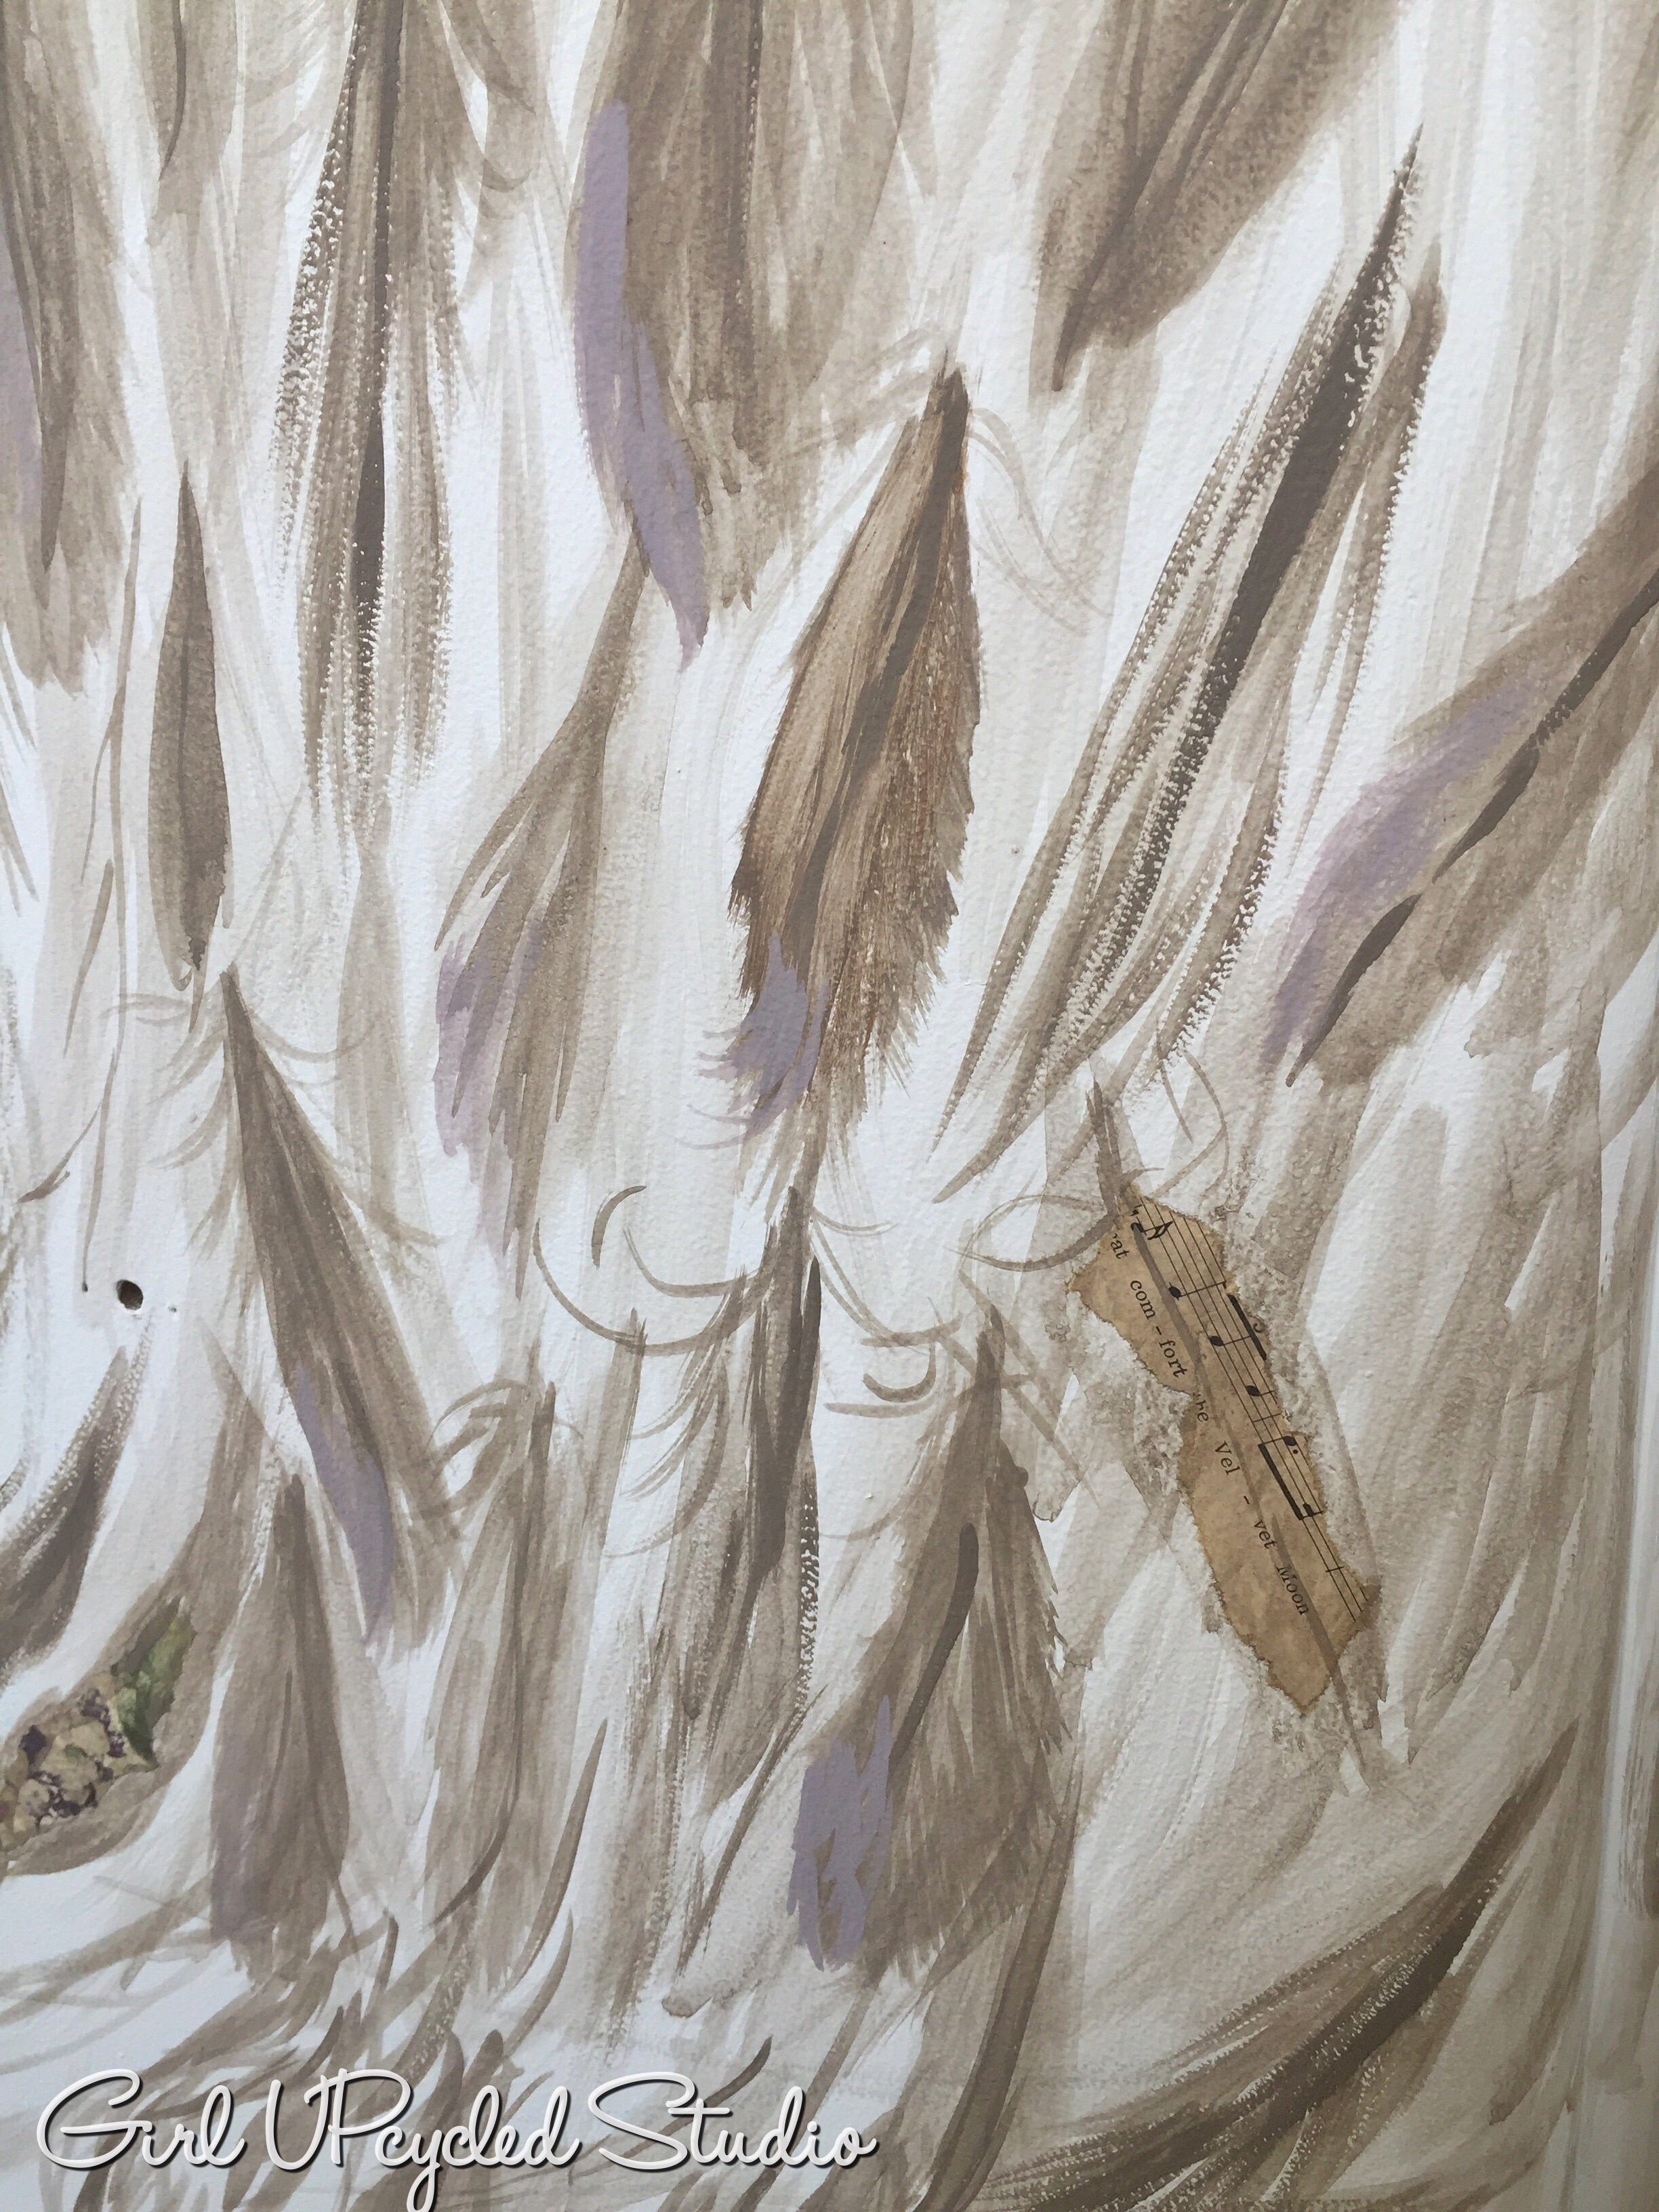 Mixed media with sheet music, wall paper then a touch of lavender paint on the tips of the feather.